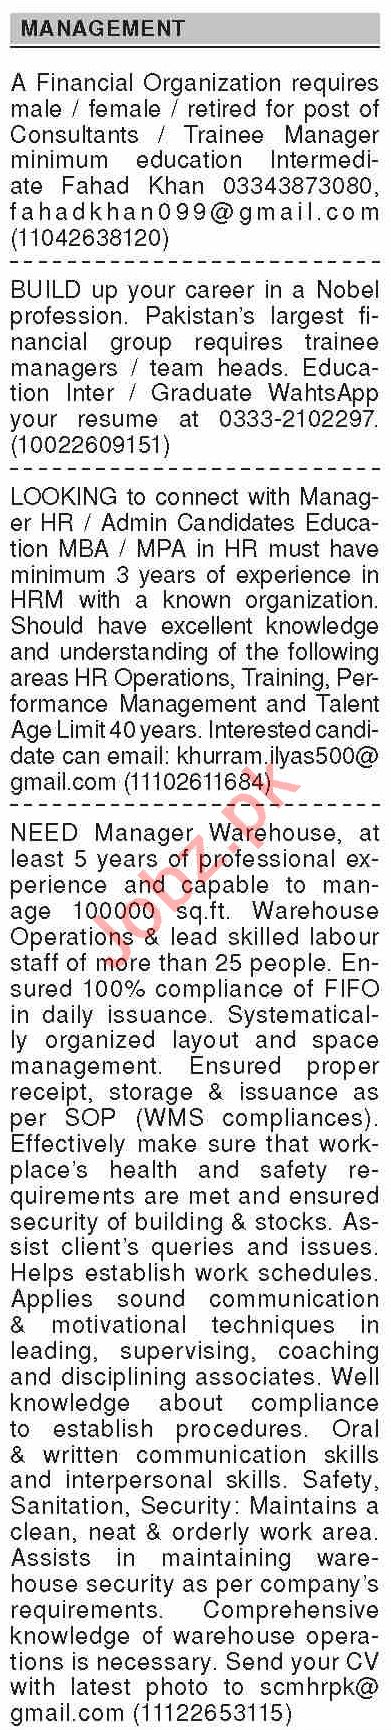 Dawn Sunday Classified Ads 13 June 2021 for Management Staff